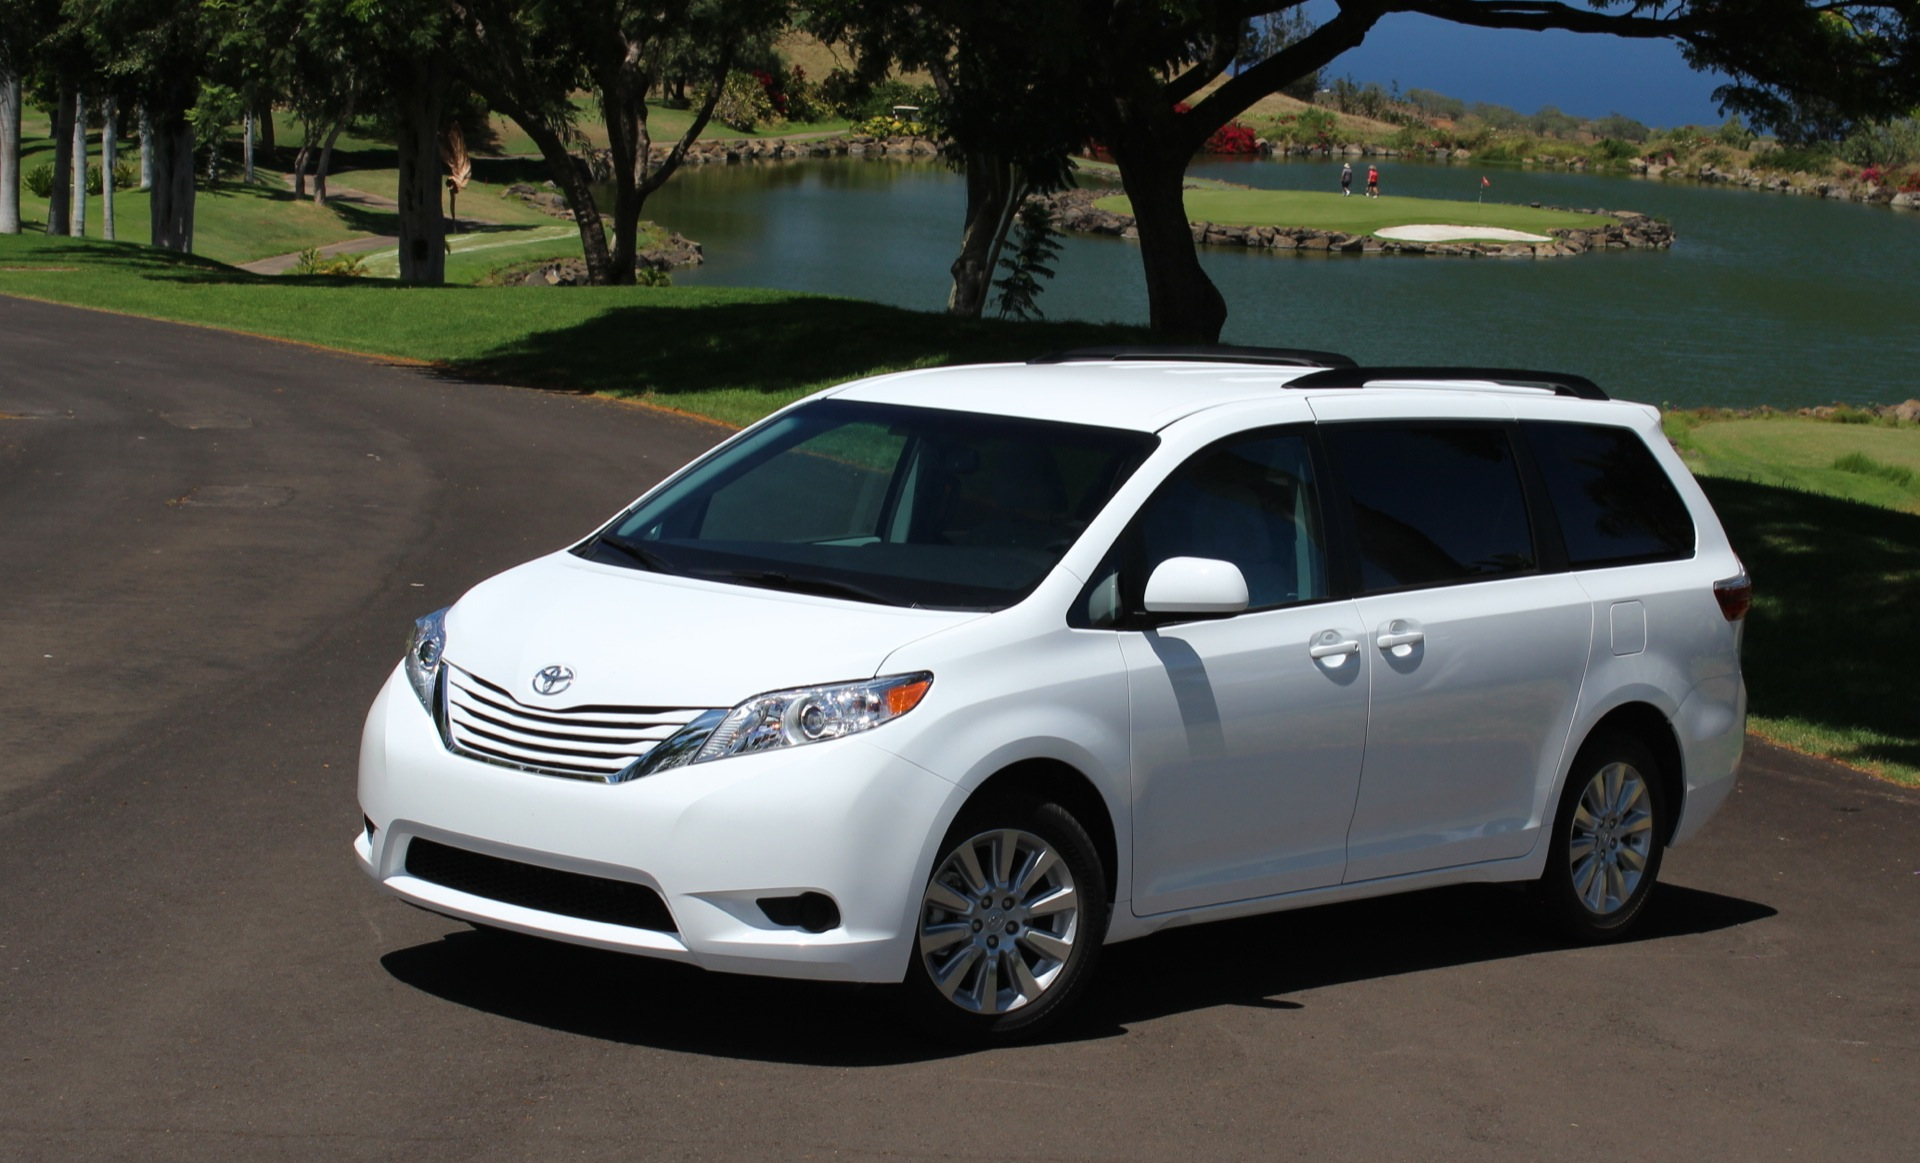 Acura Of Boston >> 2015 Toyota Sienna Review, Ratings, Specs, Prices, and Photos - The Car Connection